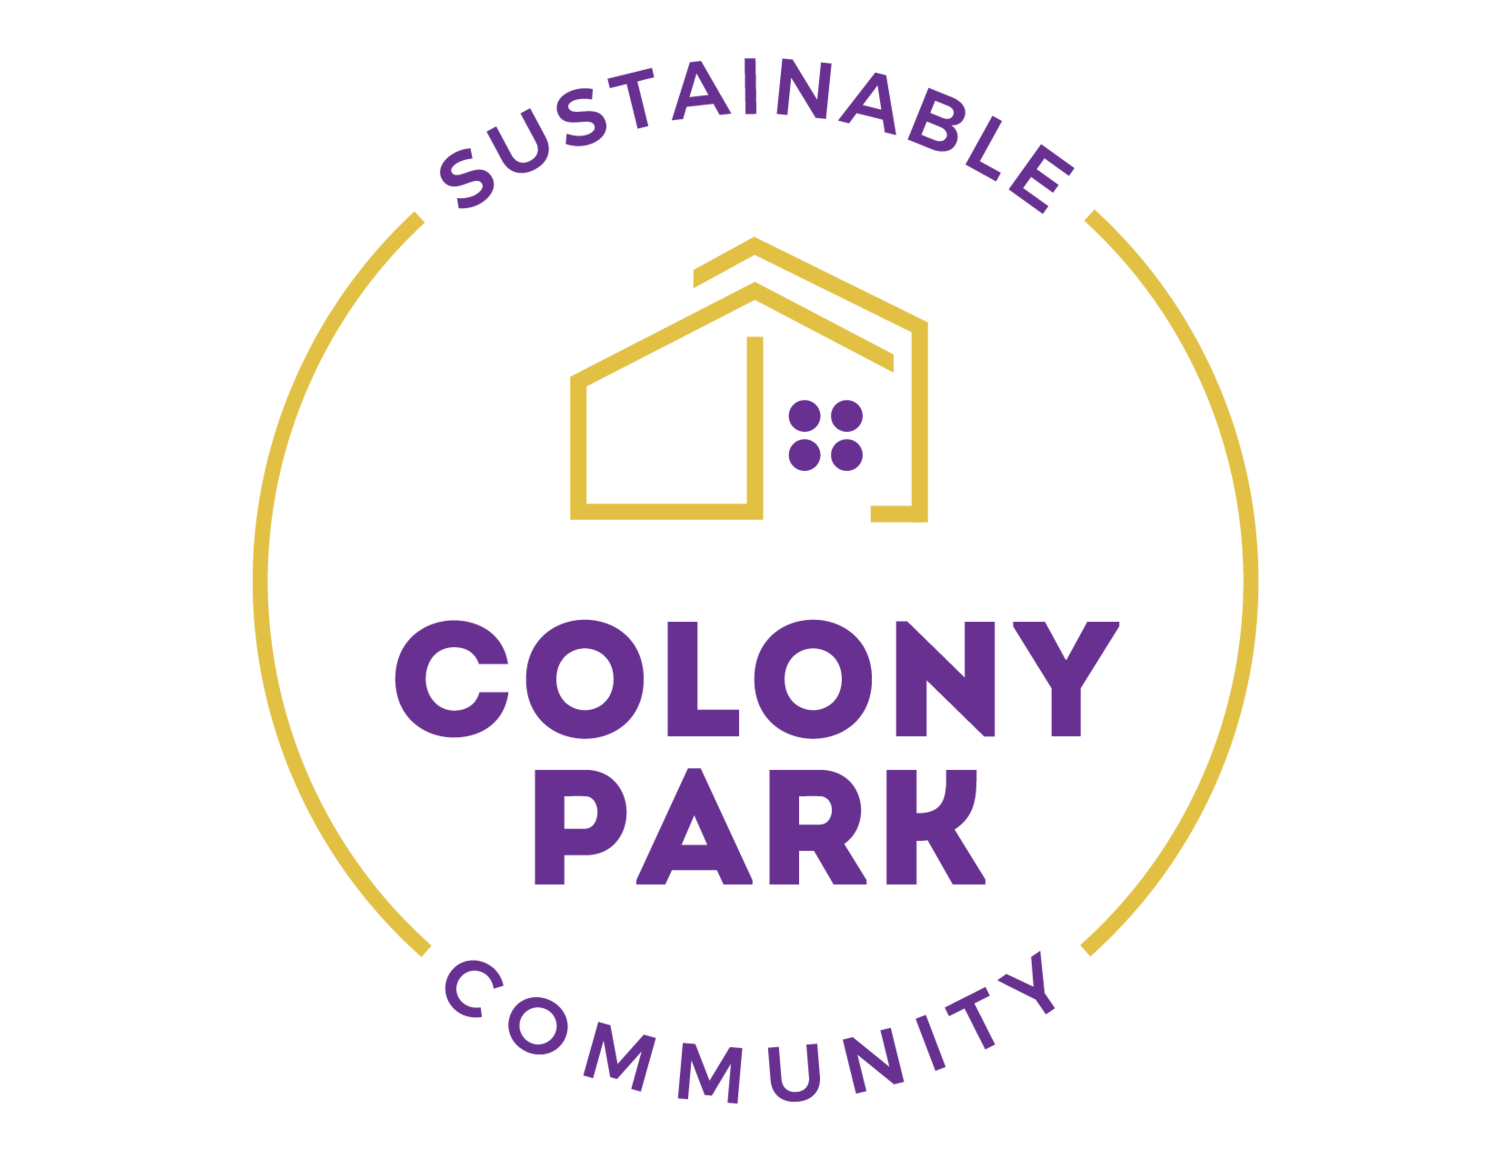 ColonyPark_NewLogo.png